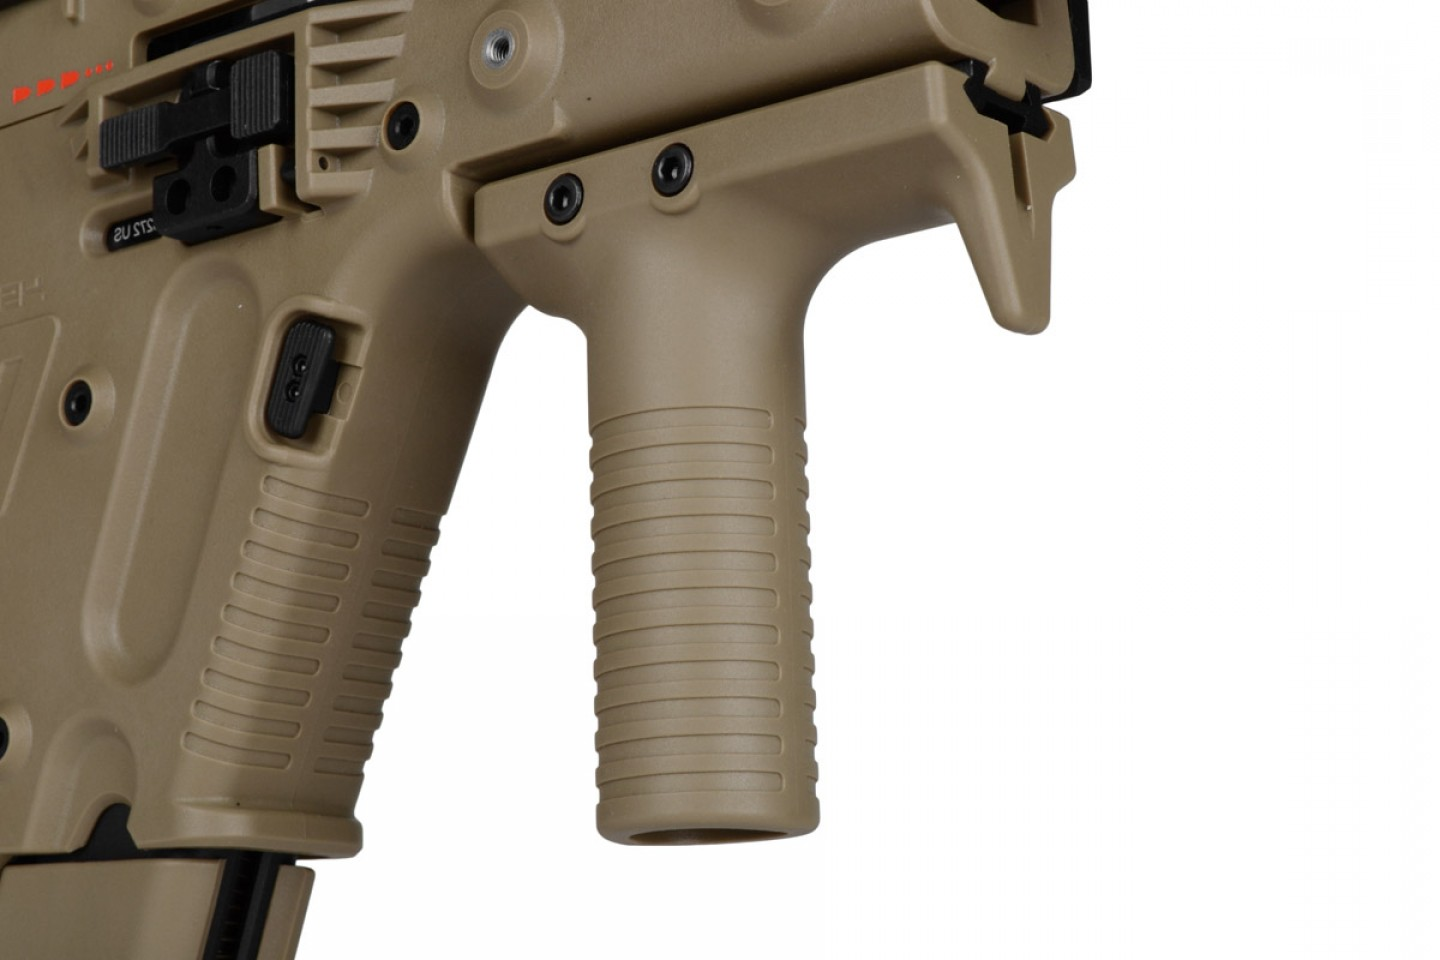 Kriss Vector Rear Grip: Kwa Kriss Vector Smg Gas Blowback Airsoft Gun Ns Tan Kwa